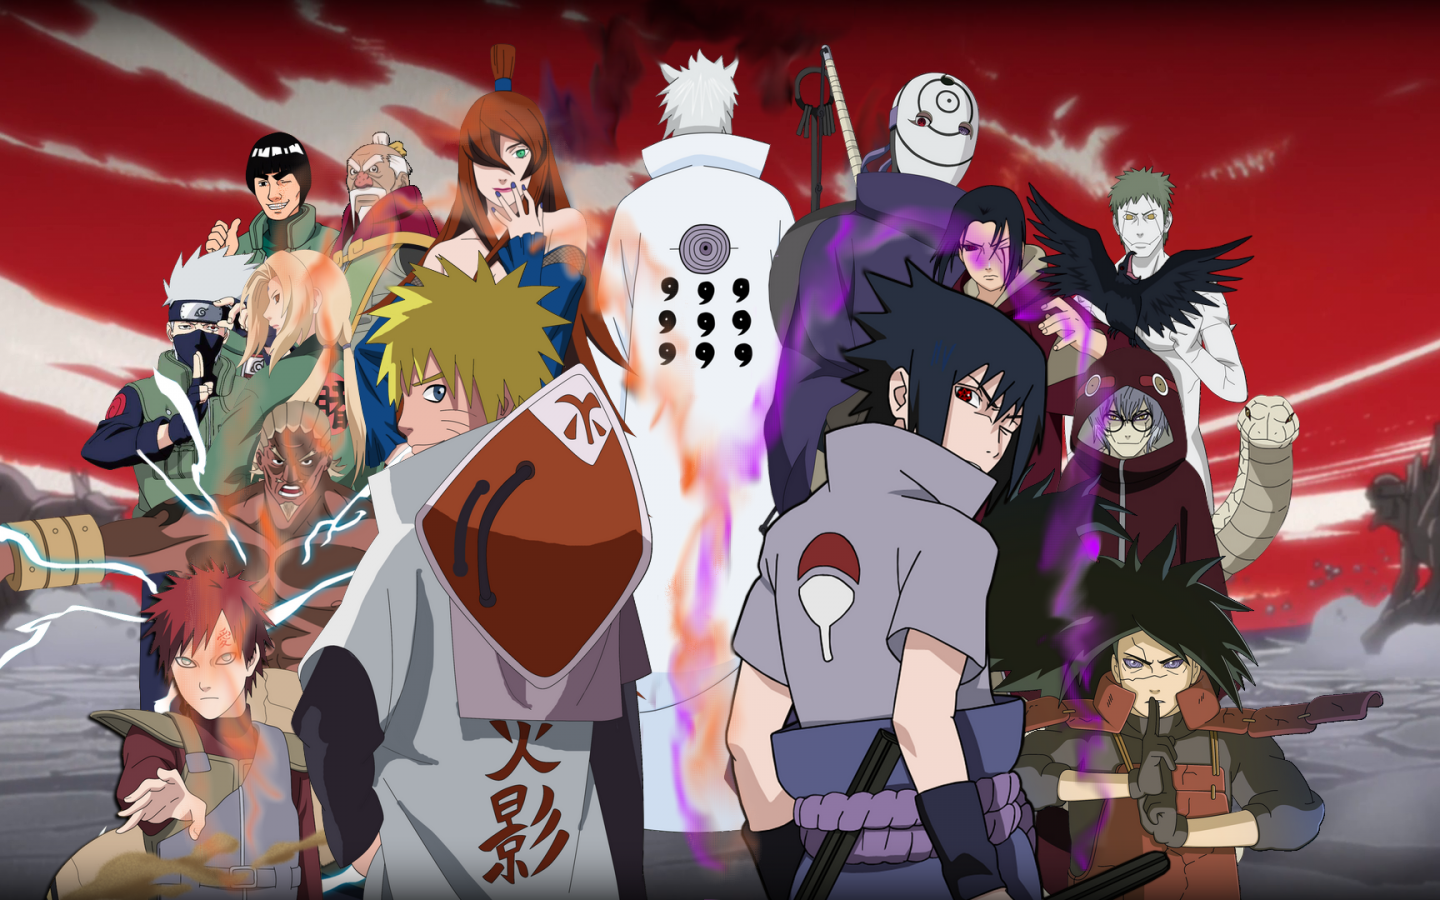 naruto shippuden opening and ending